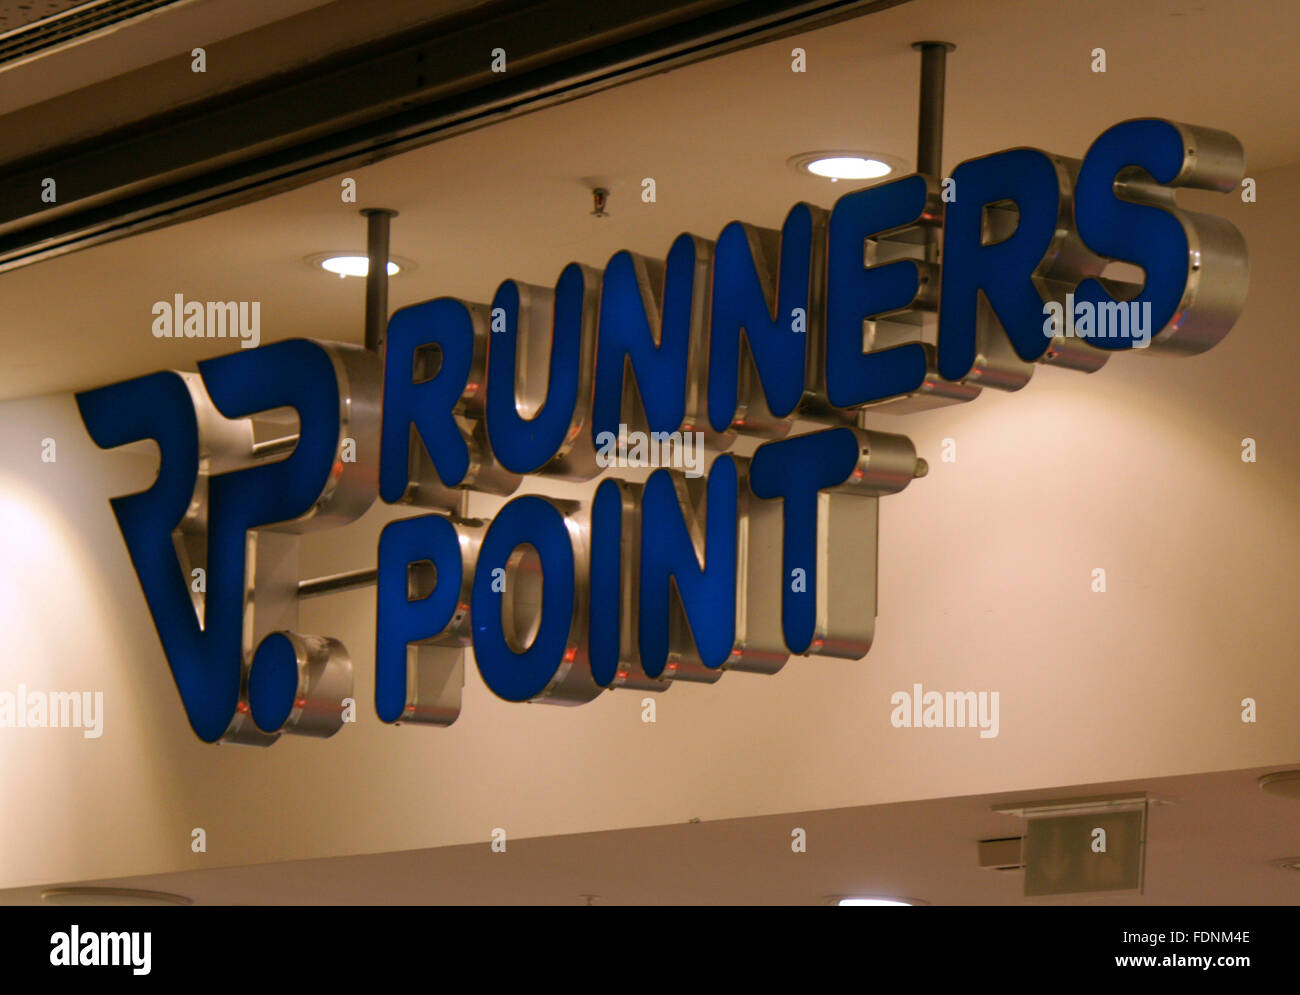 Markenname: 'Runners Point', Berlin. - Stock Image